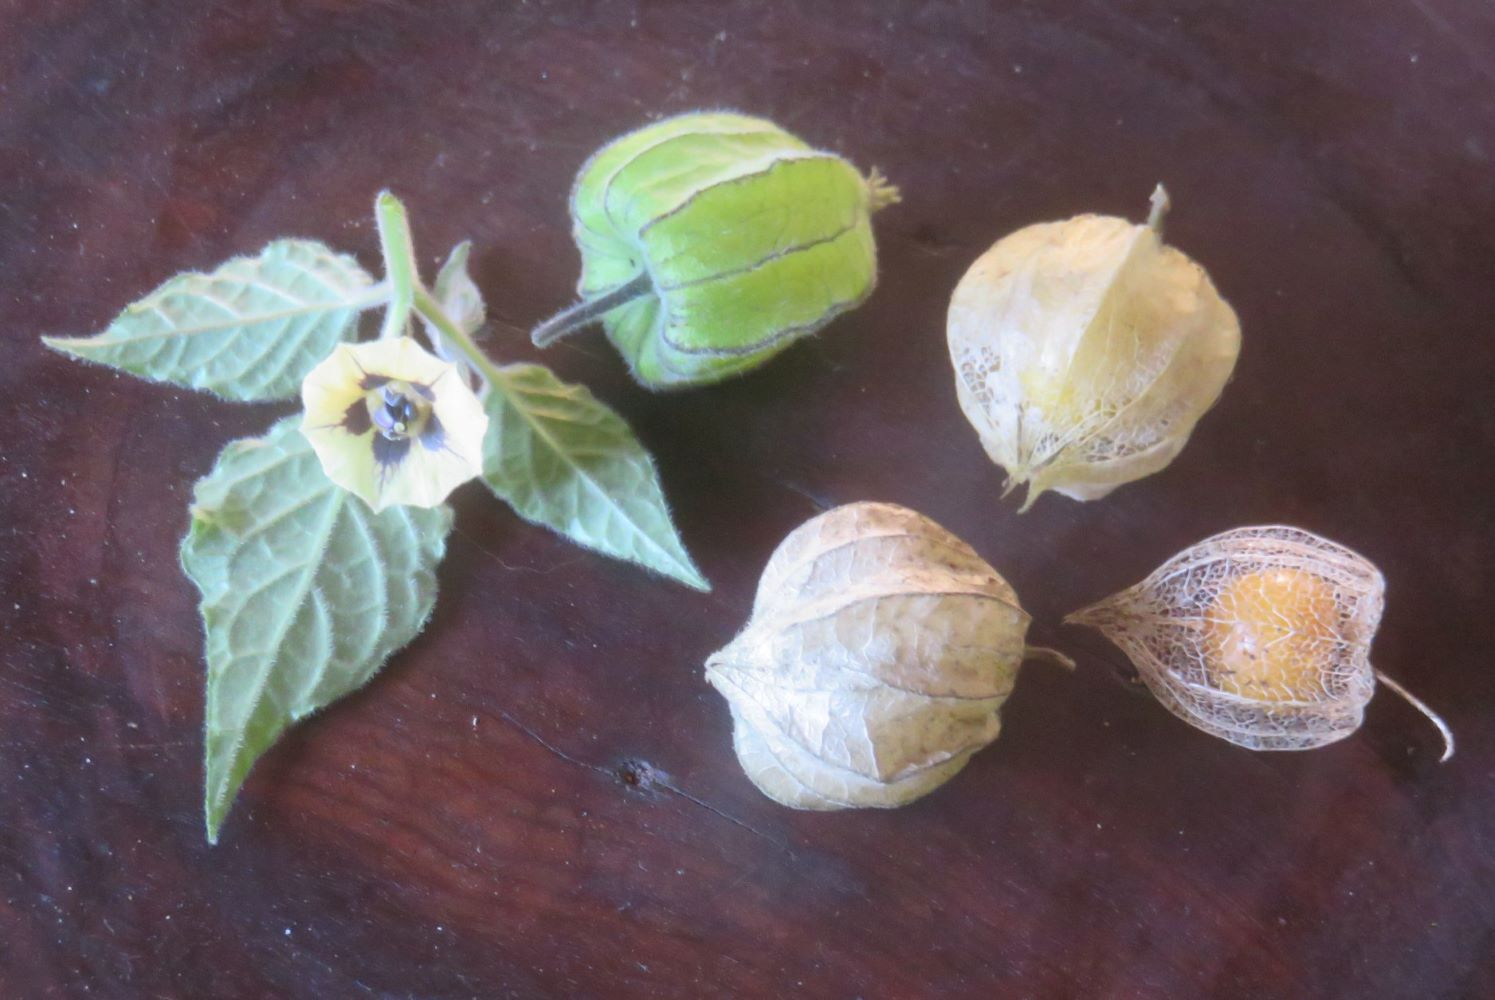 The Cape gooseberry. Very nutritious, but it originally came from Peru. Plants adapt and so can we.